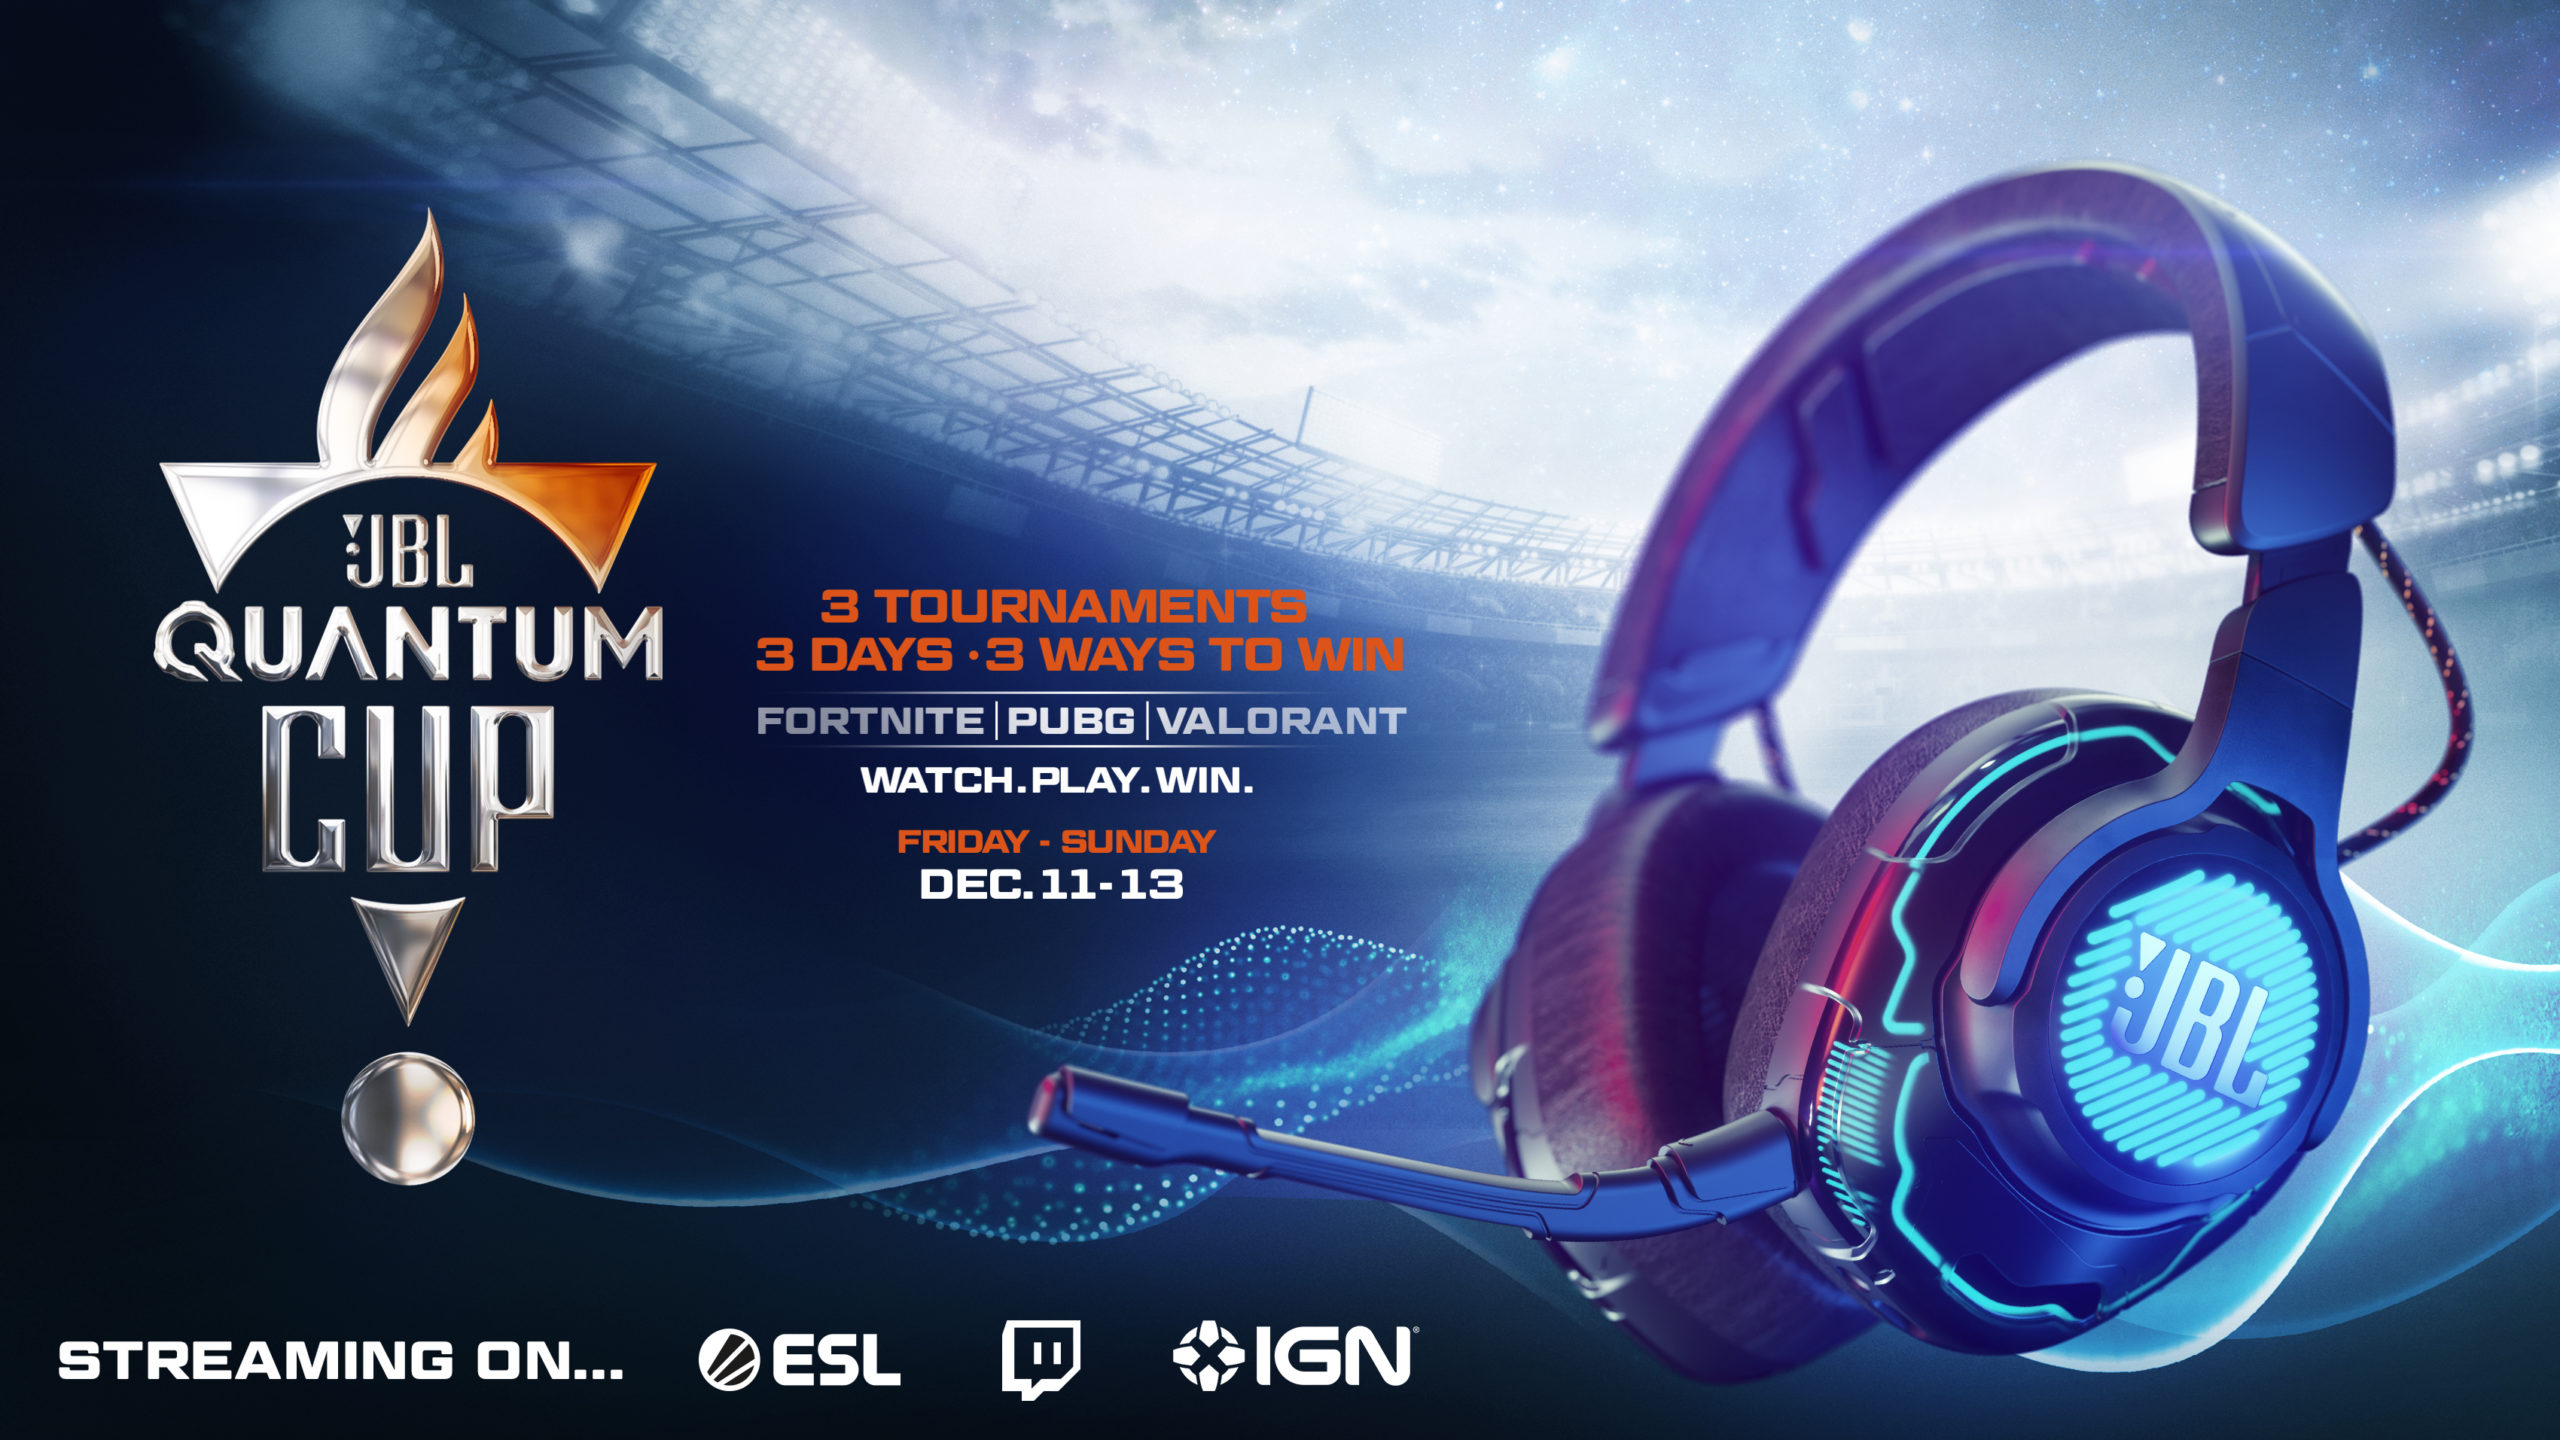 Global Gamers to Compete in JBL Quantum Cup